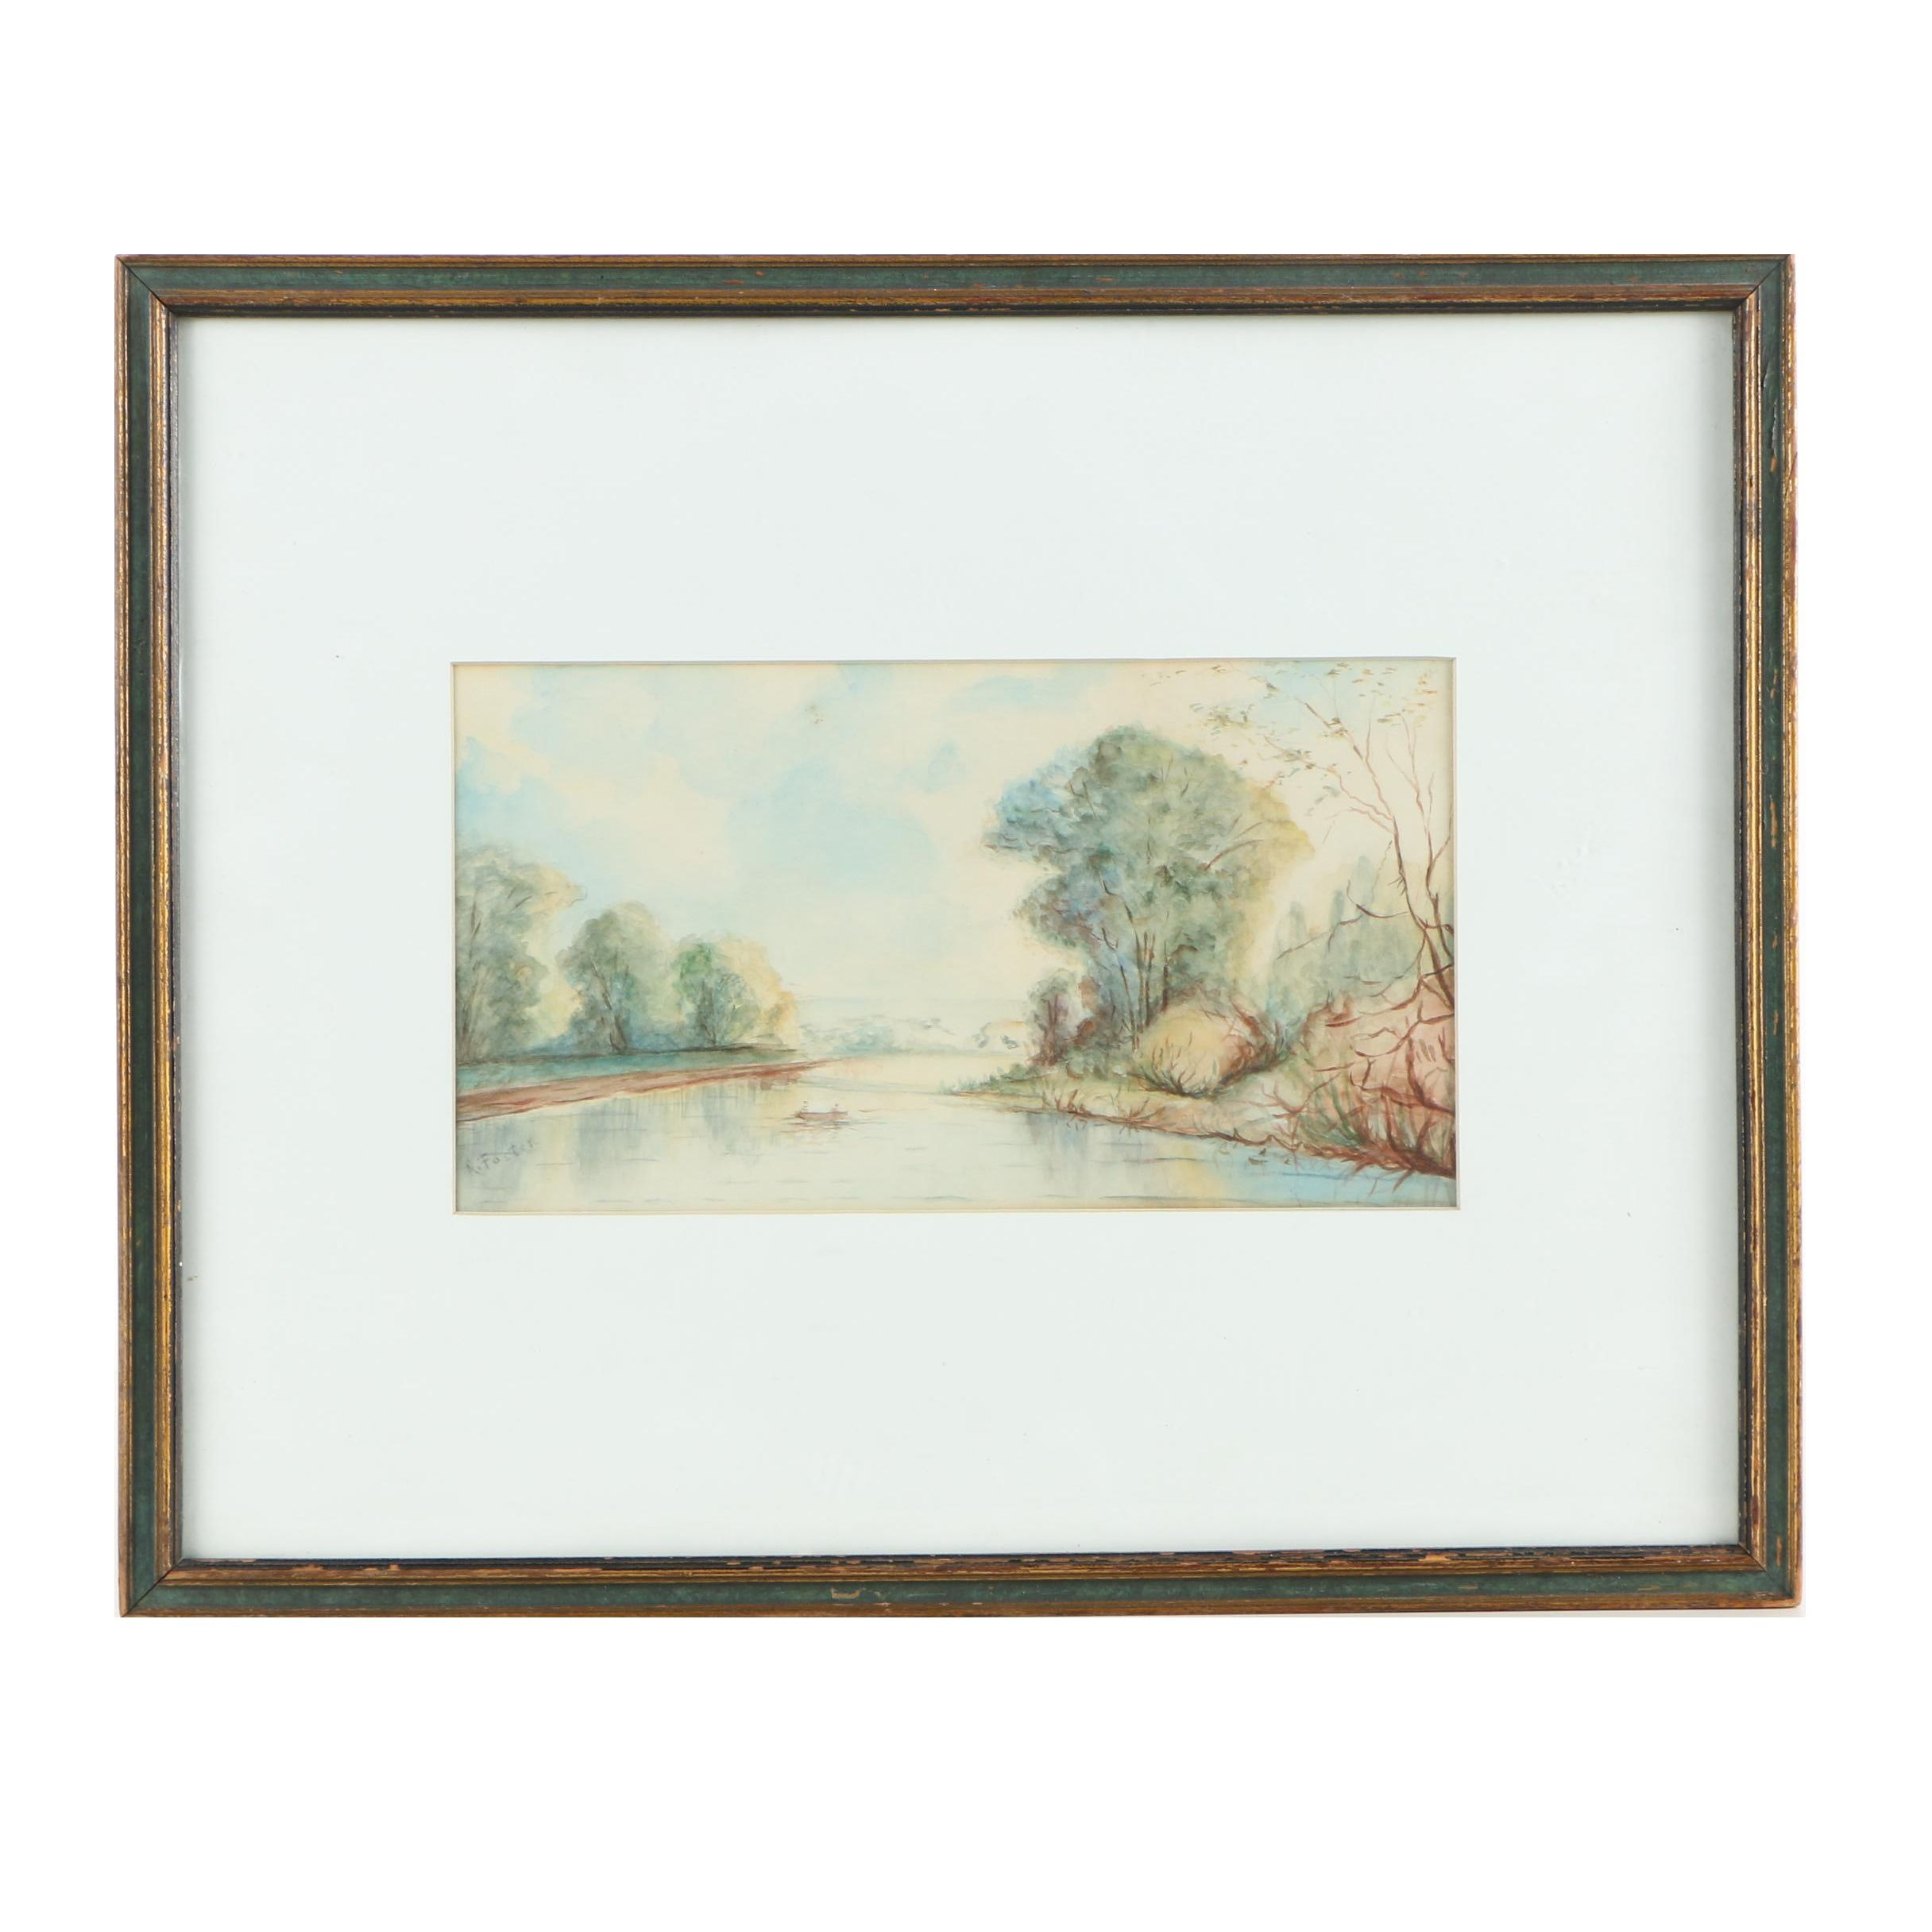 R. Foster Watercolor Painting of a Serene River